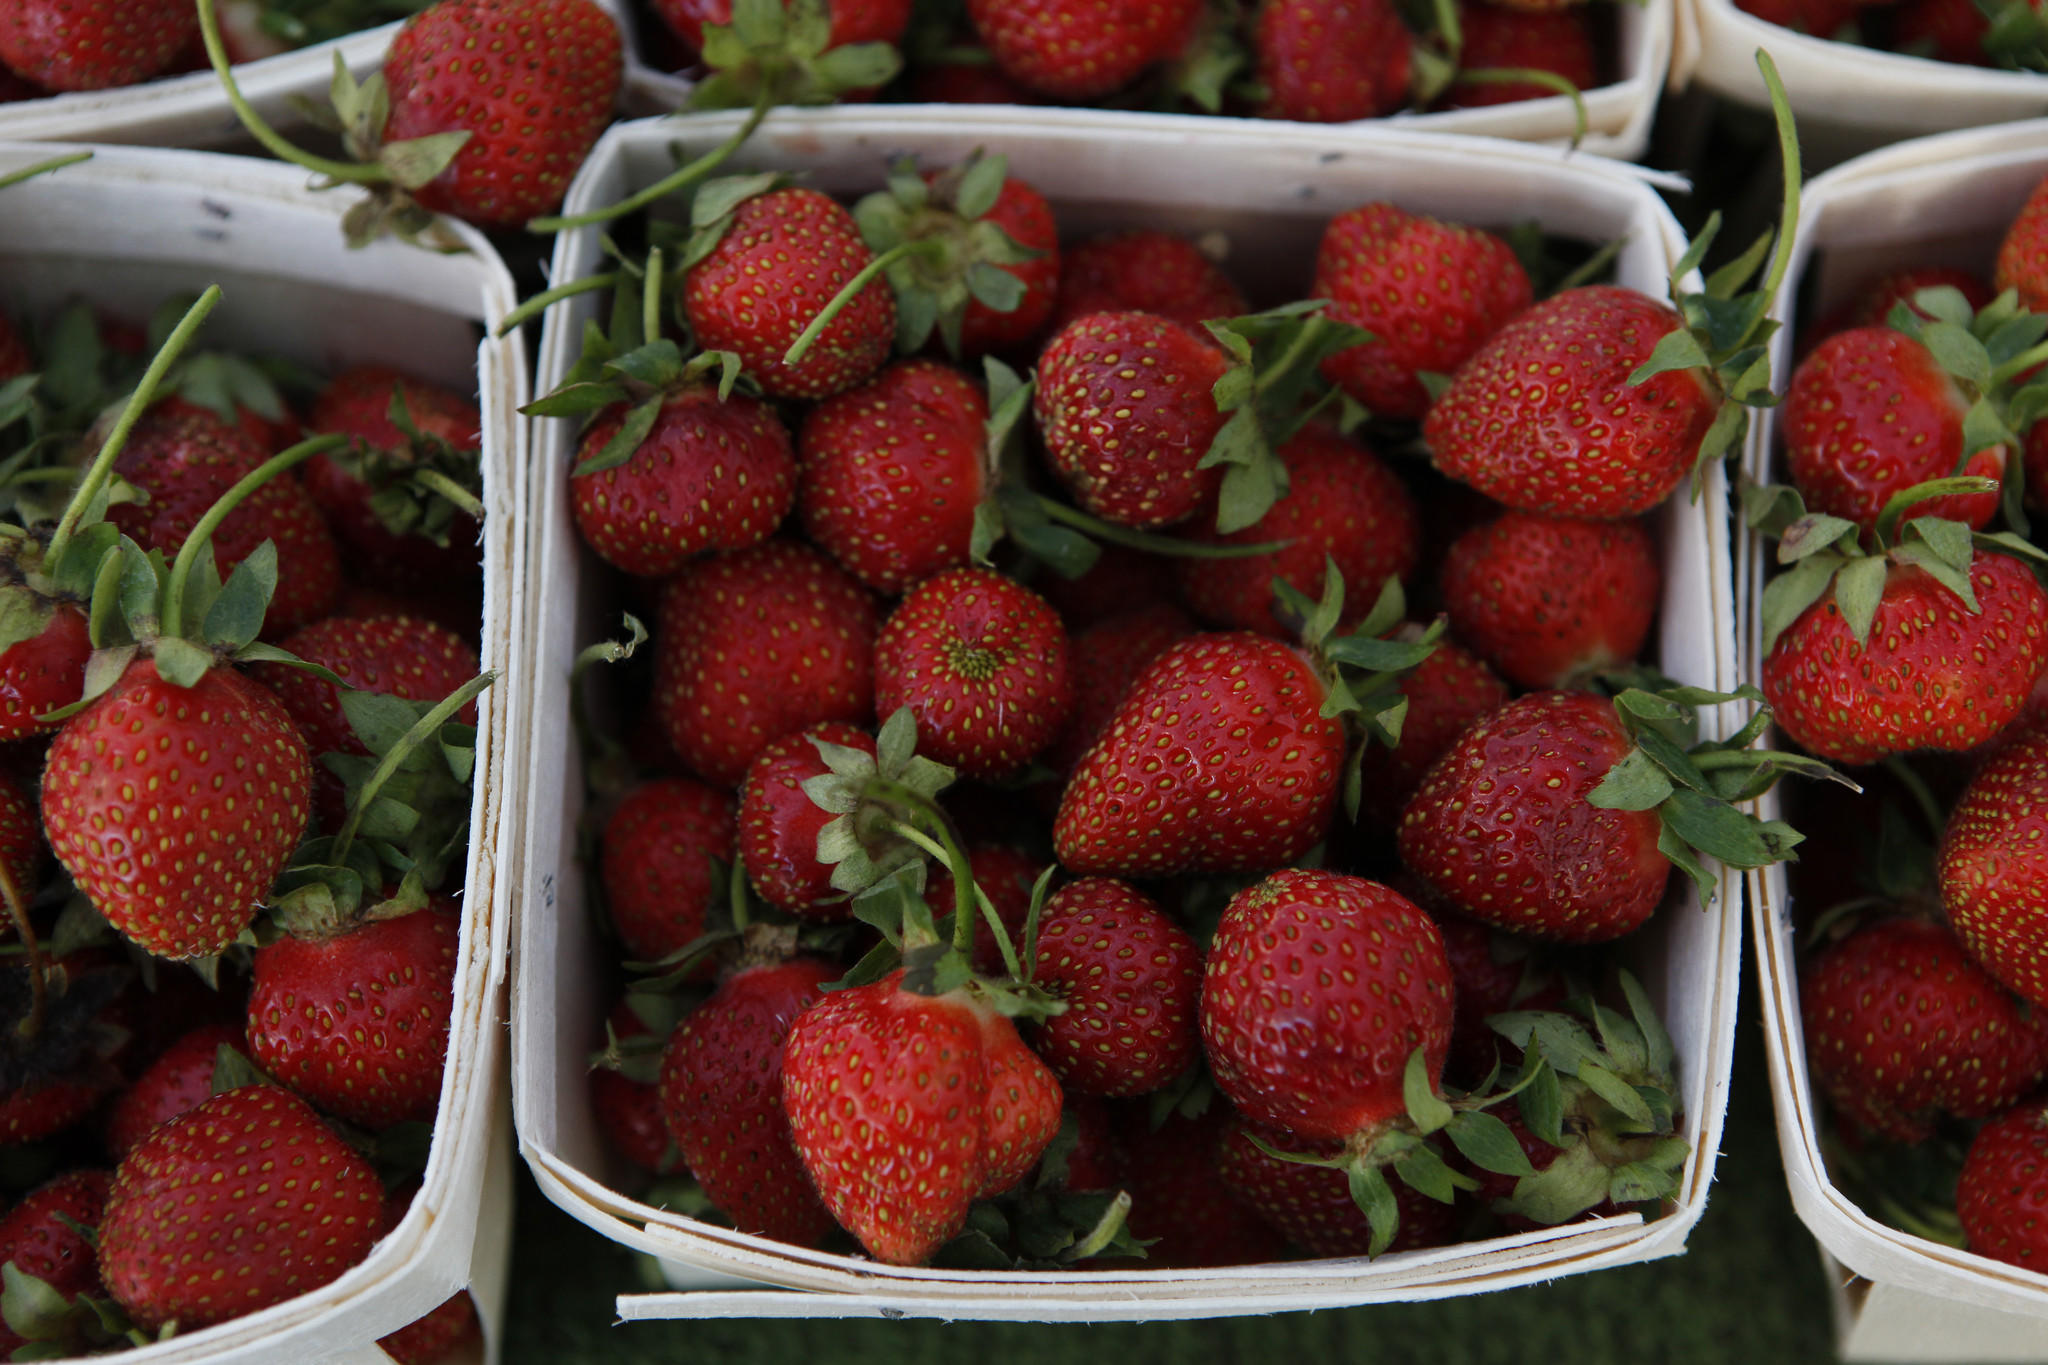 Strawberries at the Nichols Farm & Orchards (of Marengo, Ill.) booth at the Green City Market in Chicago's Lincoln Park neighborhood.